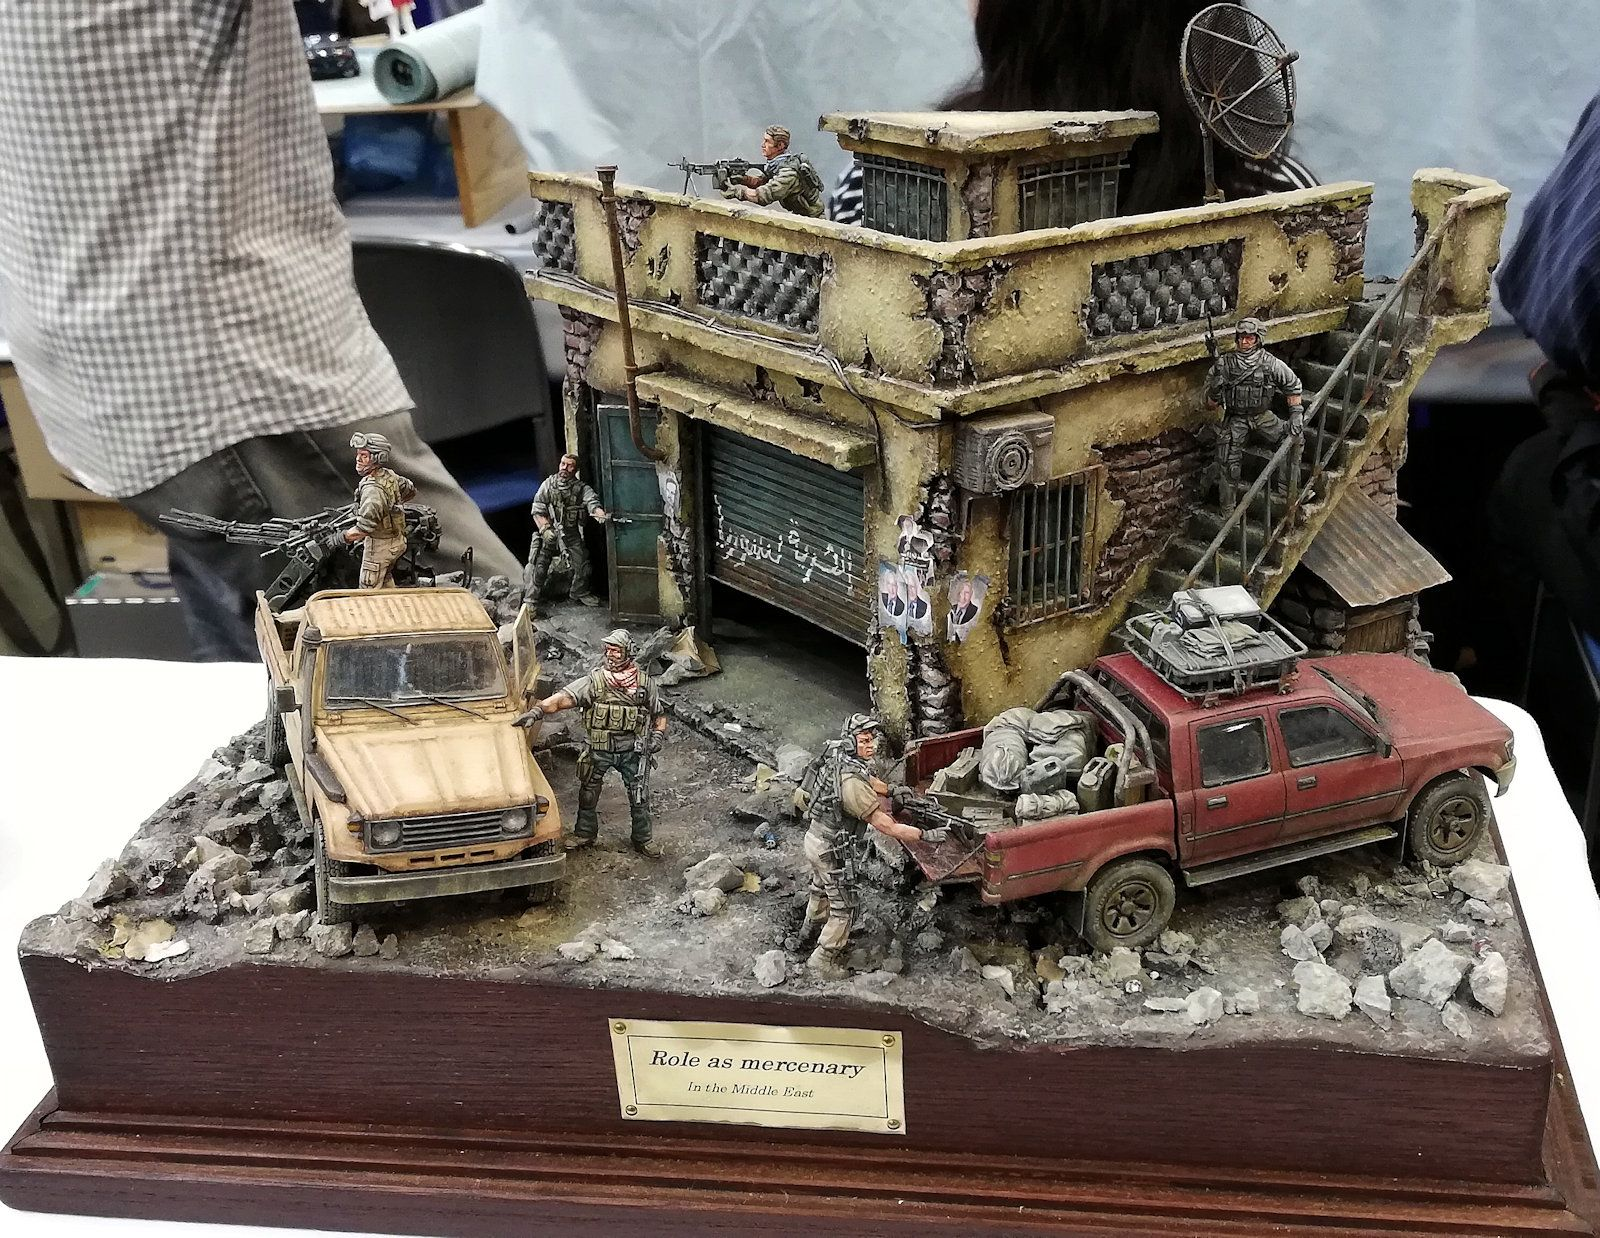 Pin by jean-luc martel on 1946/20C/AFV/Models/Tracked